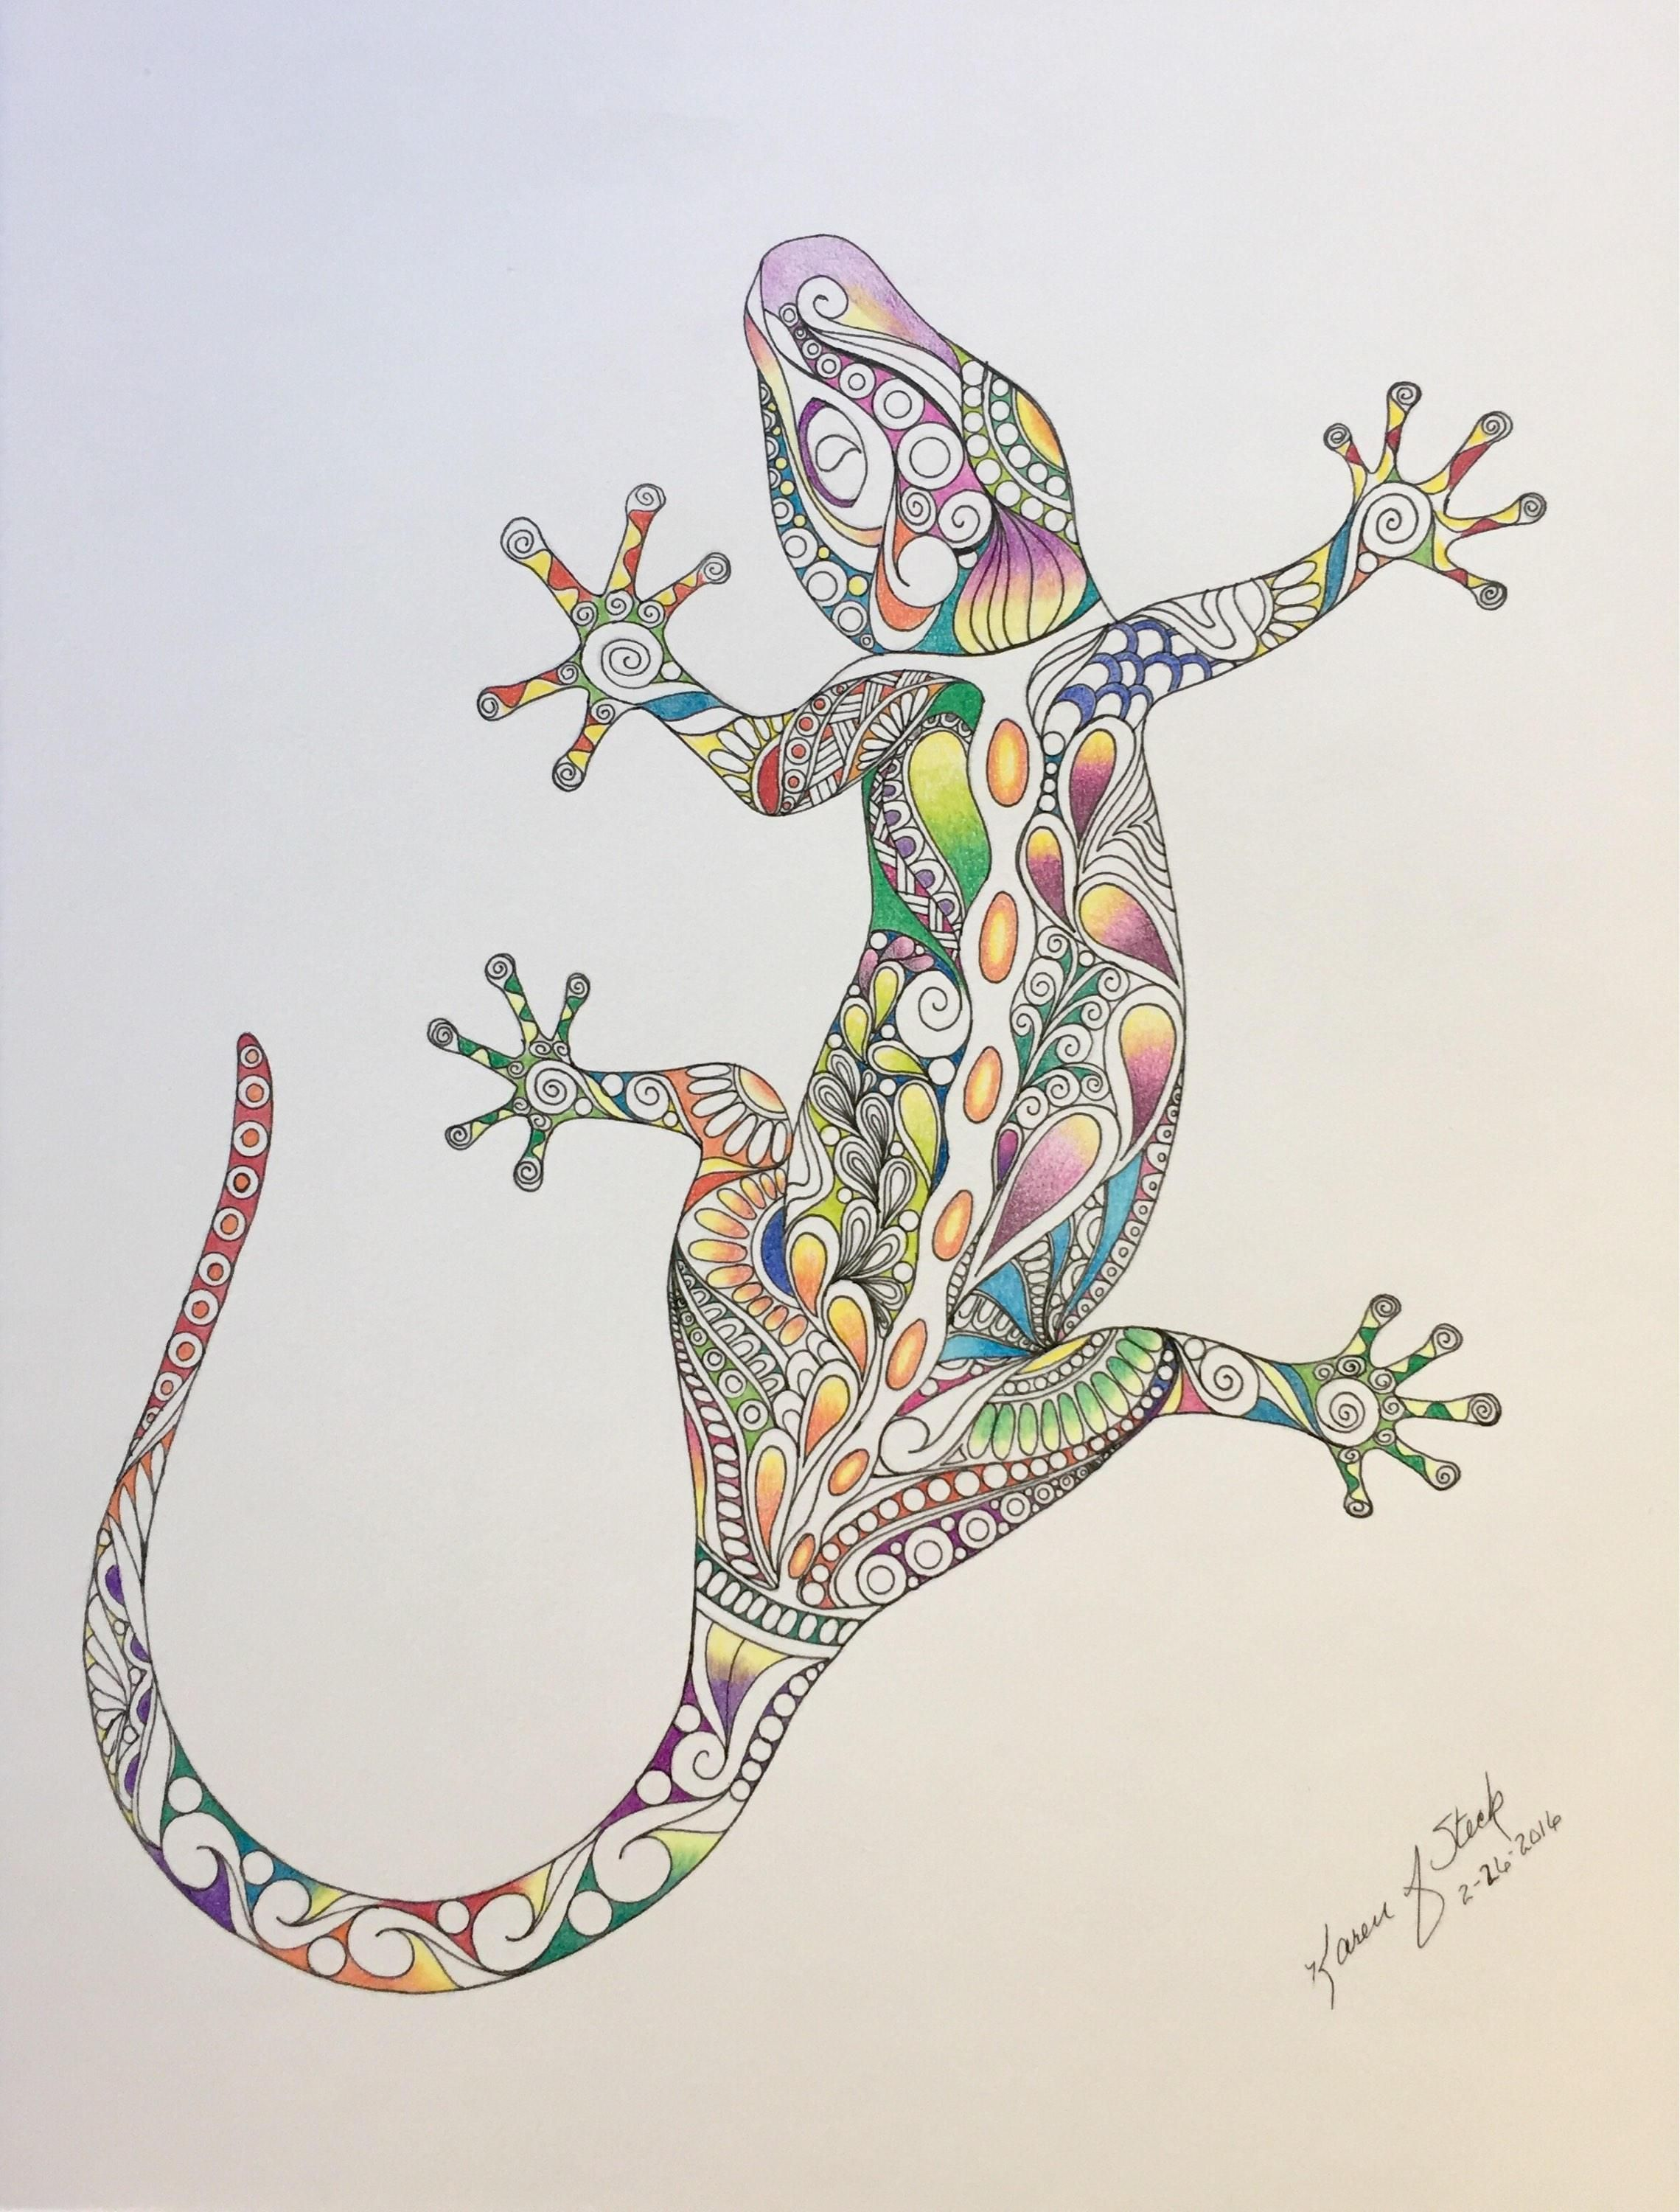 Zentangle Lizard Colored Lizard Colored Zentangle Bright Lizard Wall Lizard Art Wall Decor Reptile Art Pencils Ink Zentangle Ar Zentangle Art Art Art Pencils